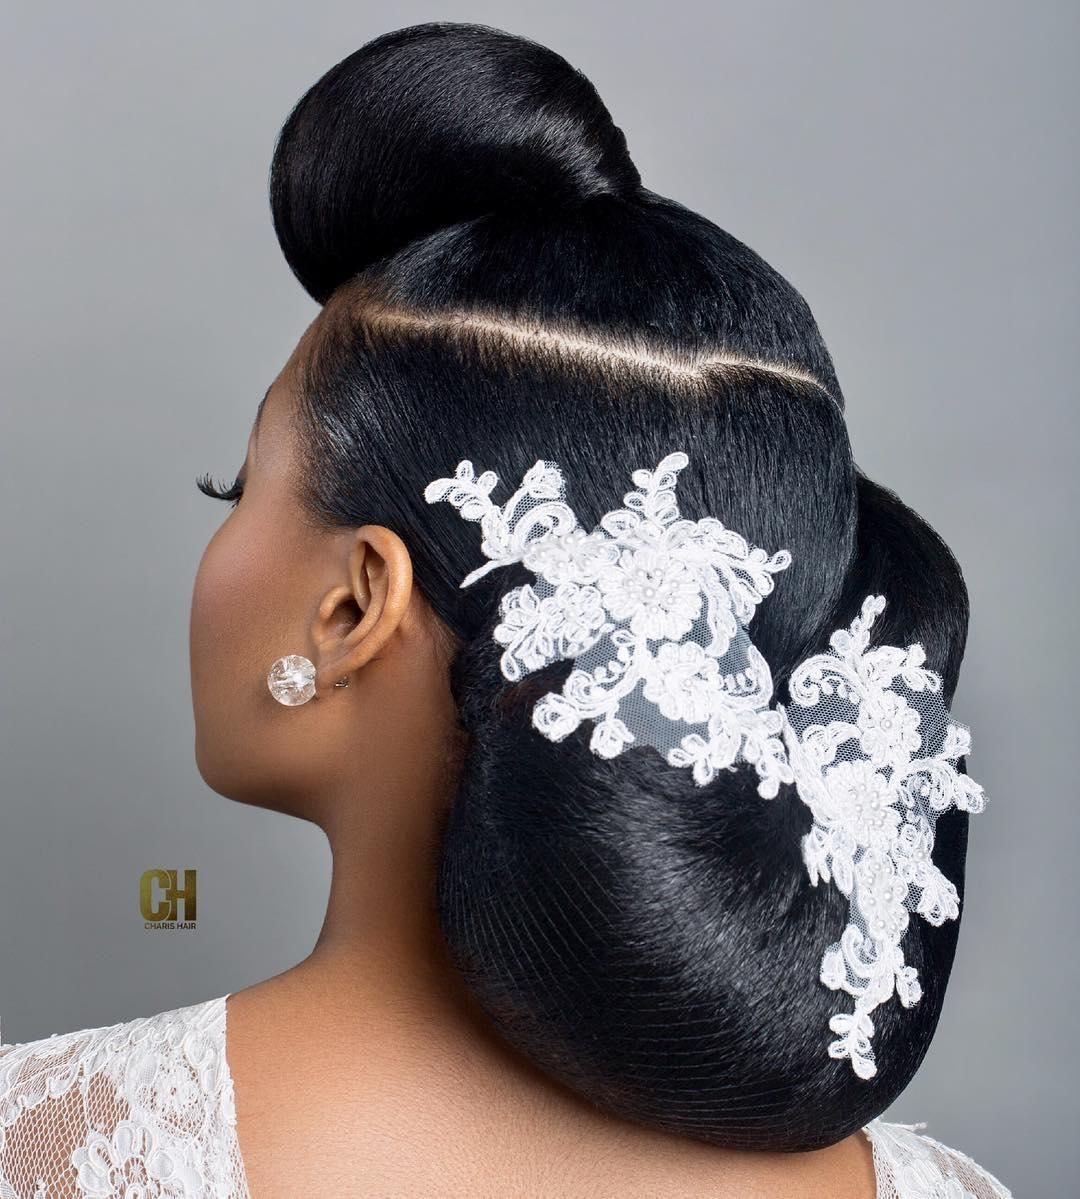 charis hair bridal hair stylist for black and mixed race